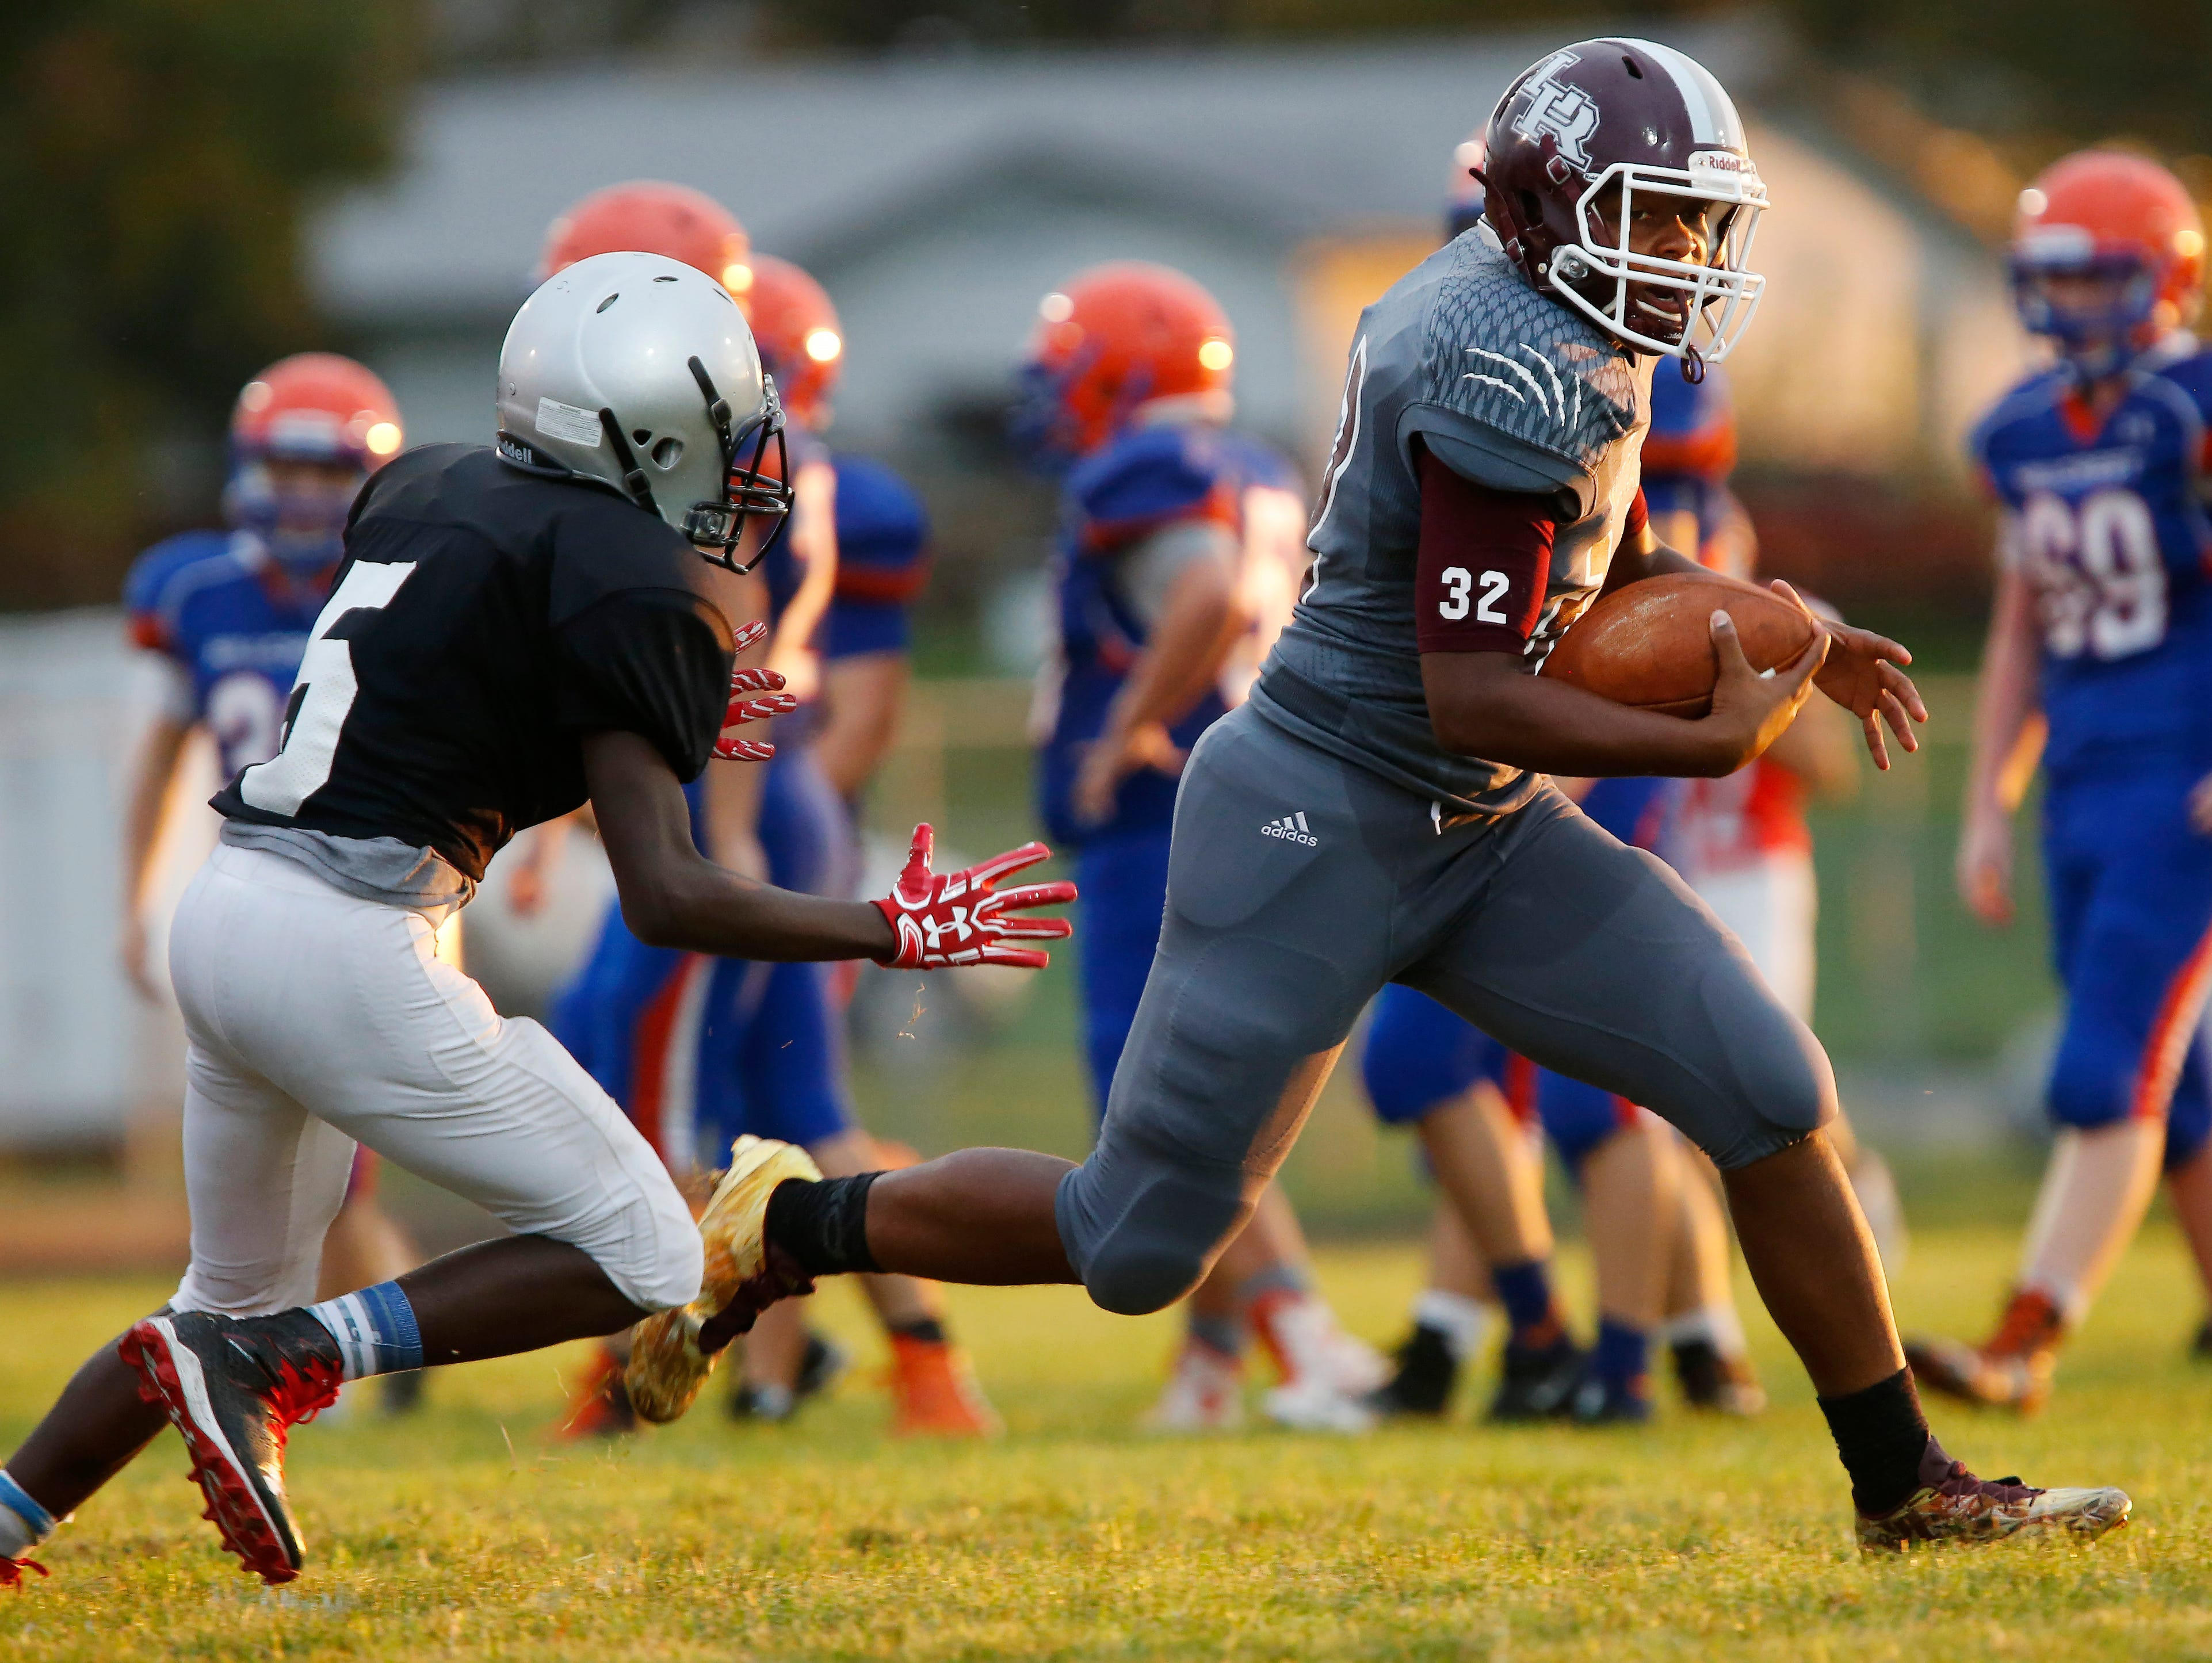 Dee Smith, of Logan-Rogersville (32), runs past a Central defender during the jamboree at Logan-Rogersville High School on Friday, August 12, 2016.